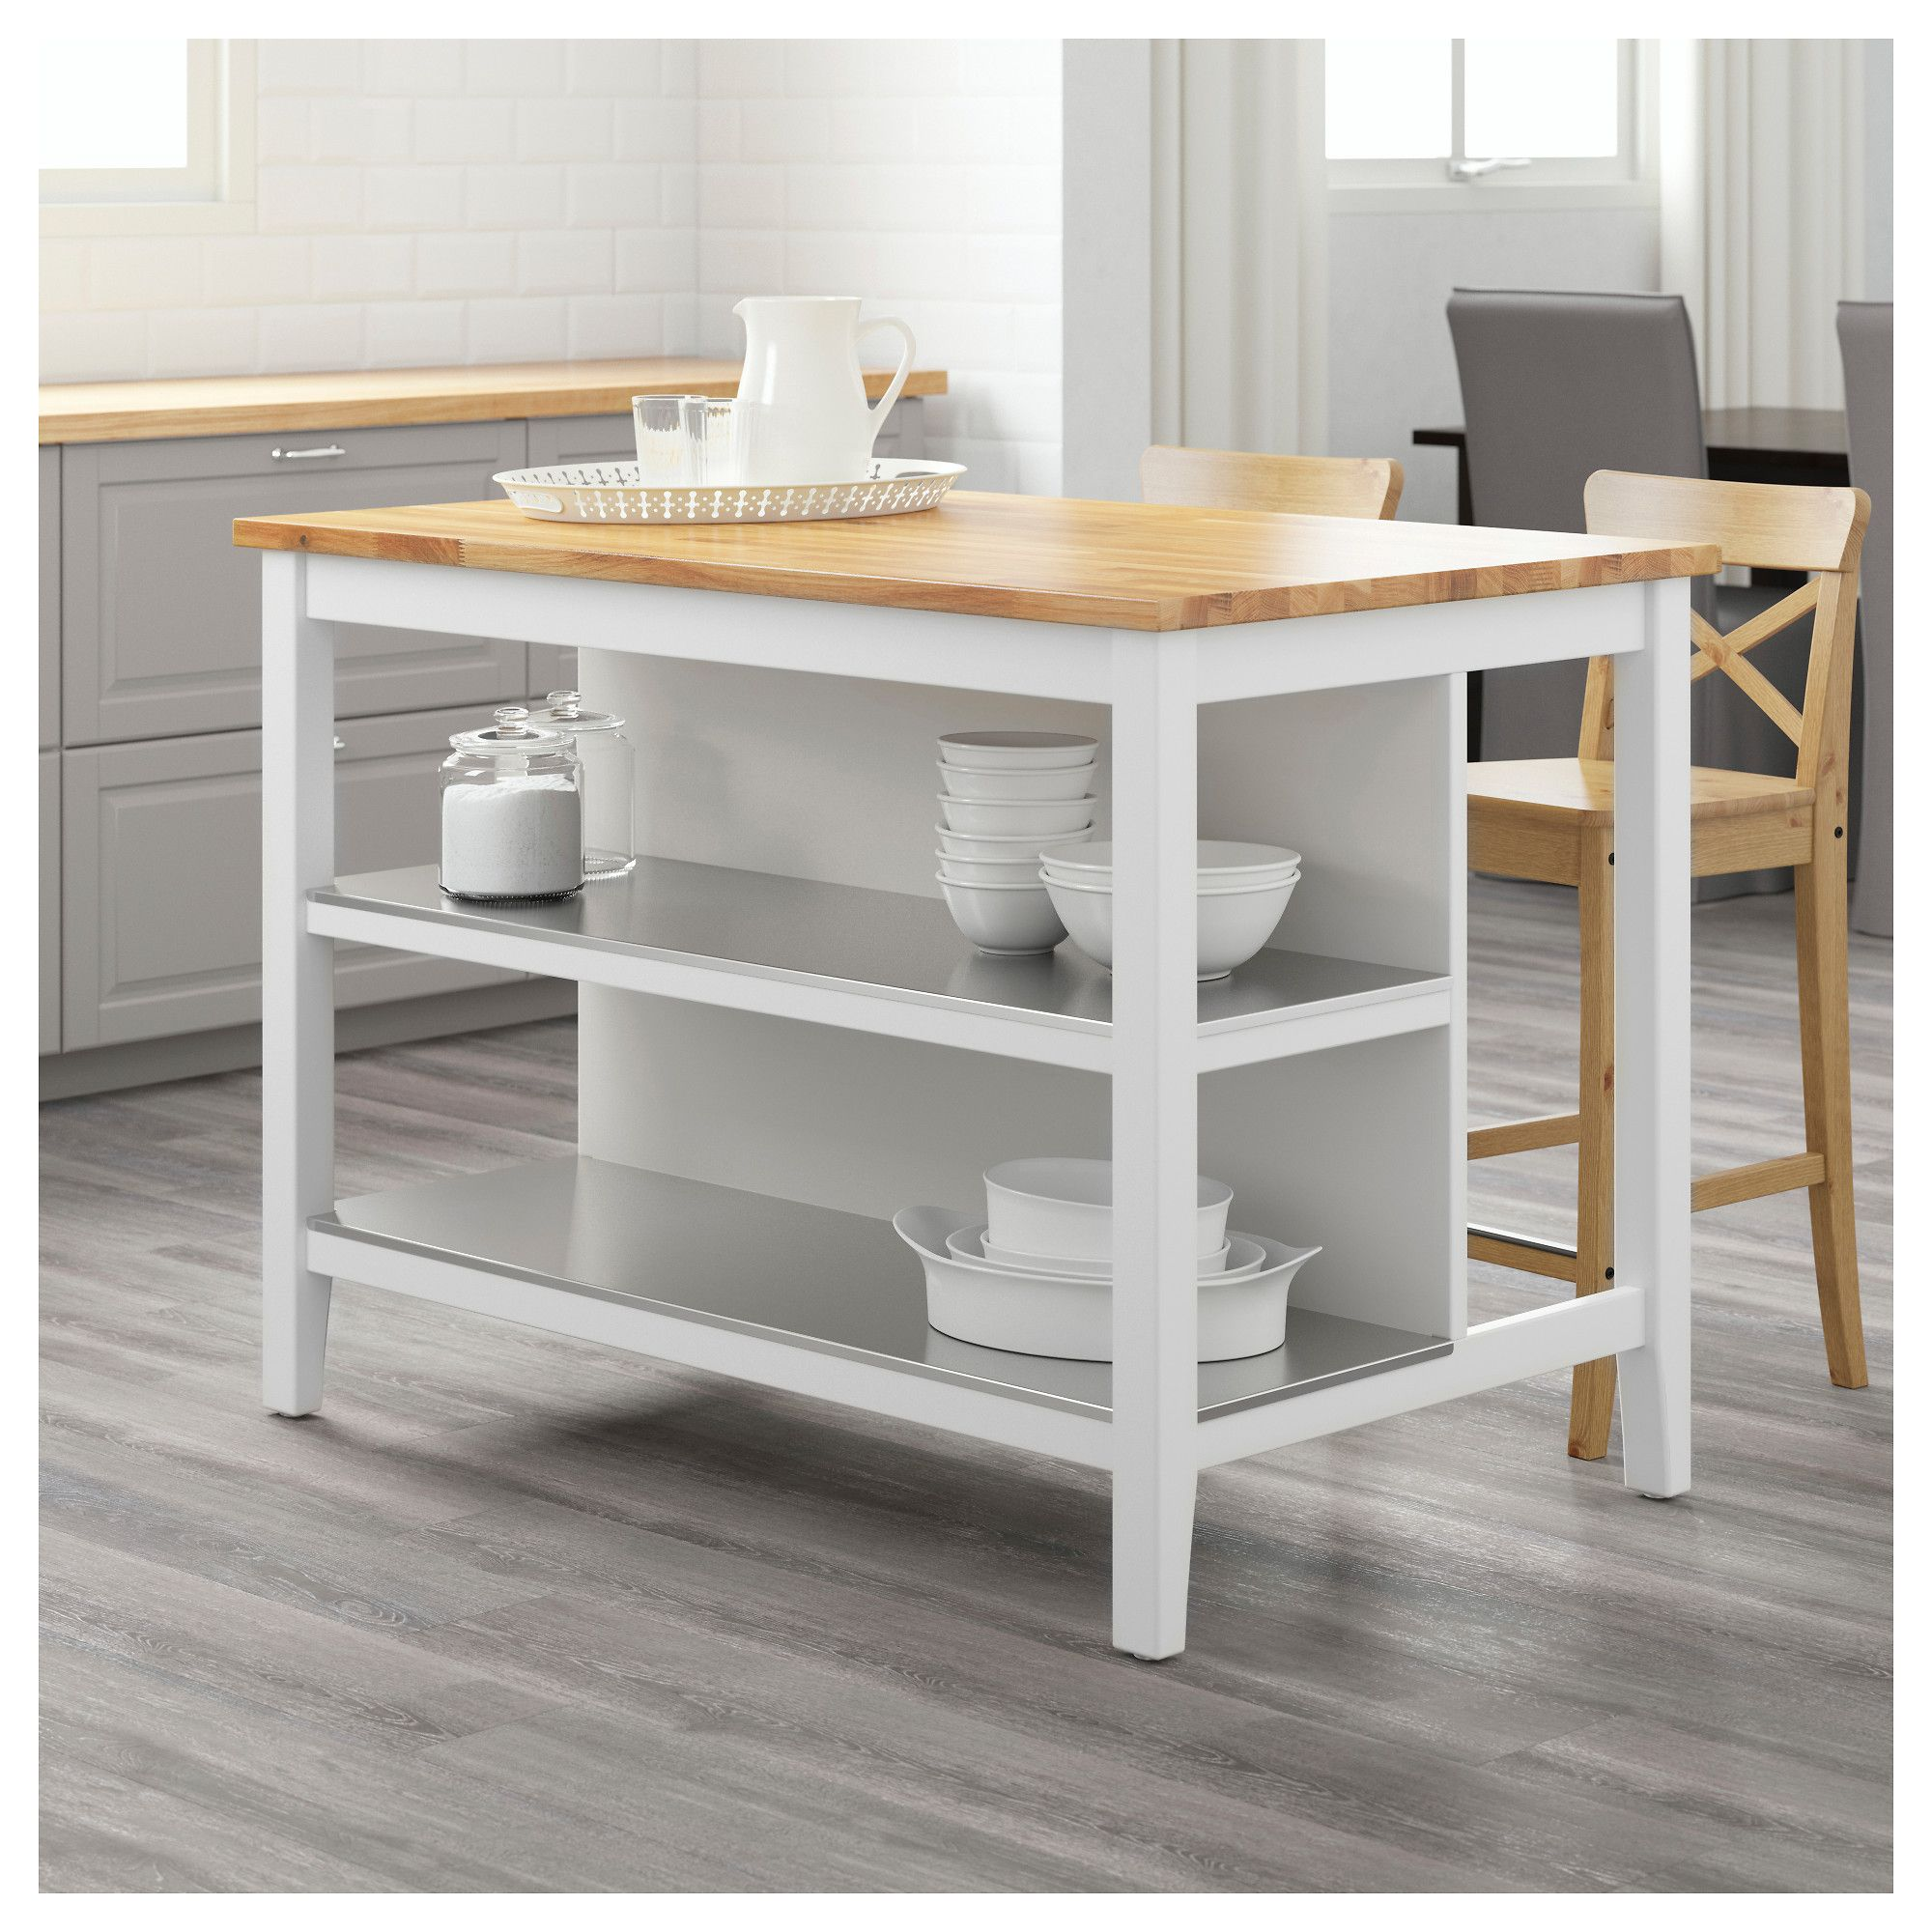 STENSTORP Kitchen island White/oak 126 x 79 cm | New house ideas ...